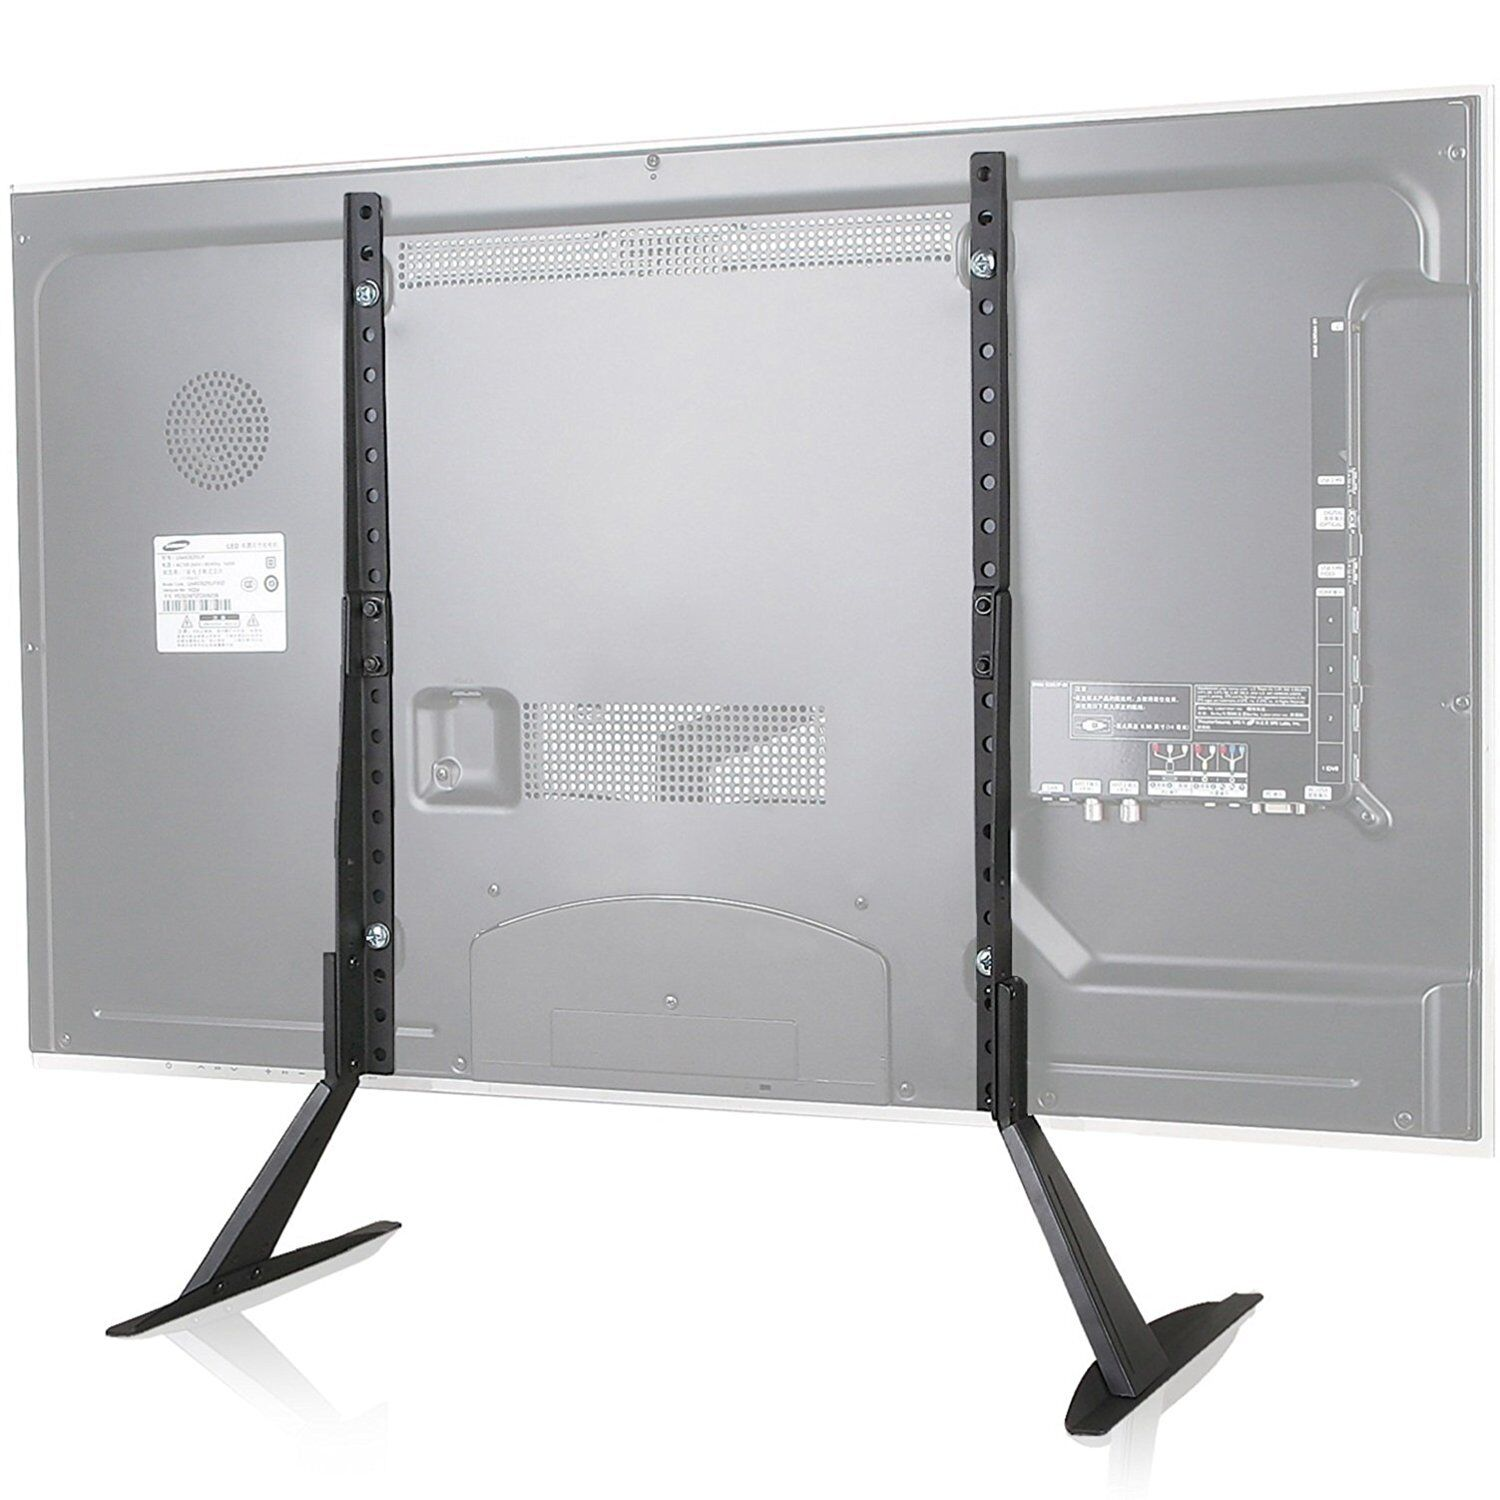 "WALI TV Stand Table Top for Most 22""-65"" LCD Flat Screen"